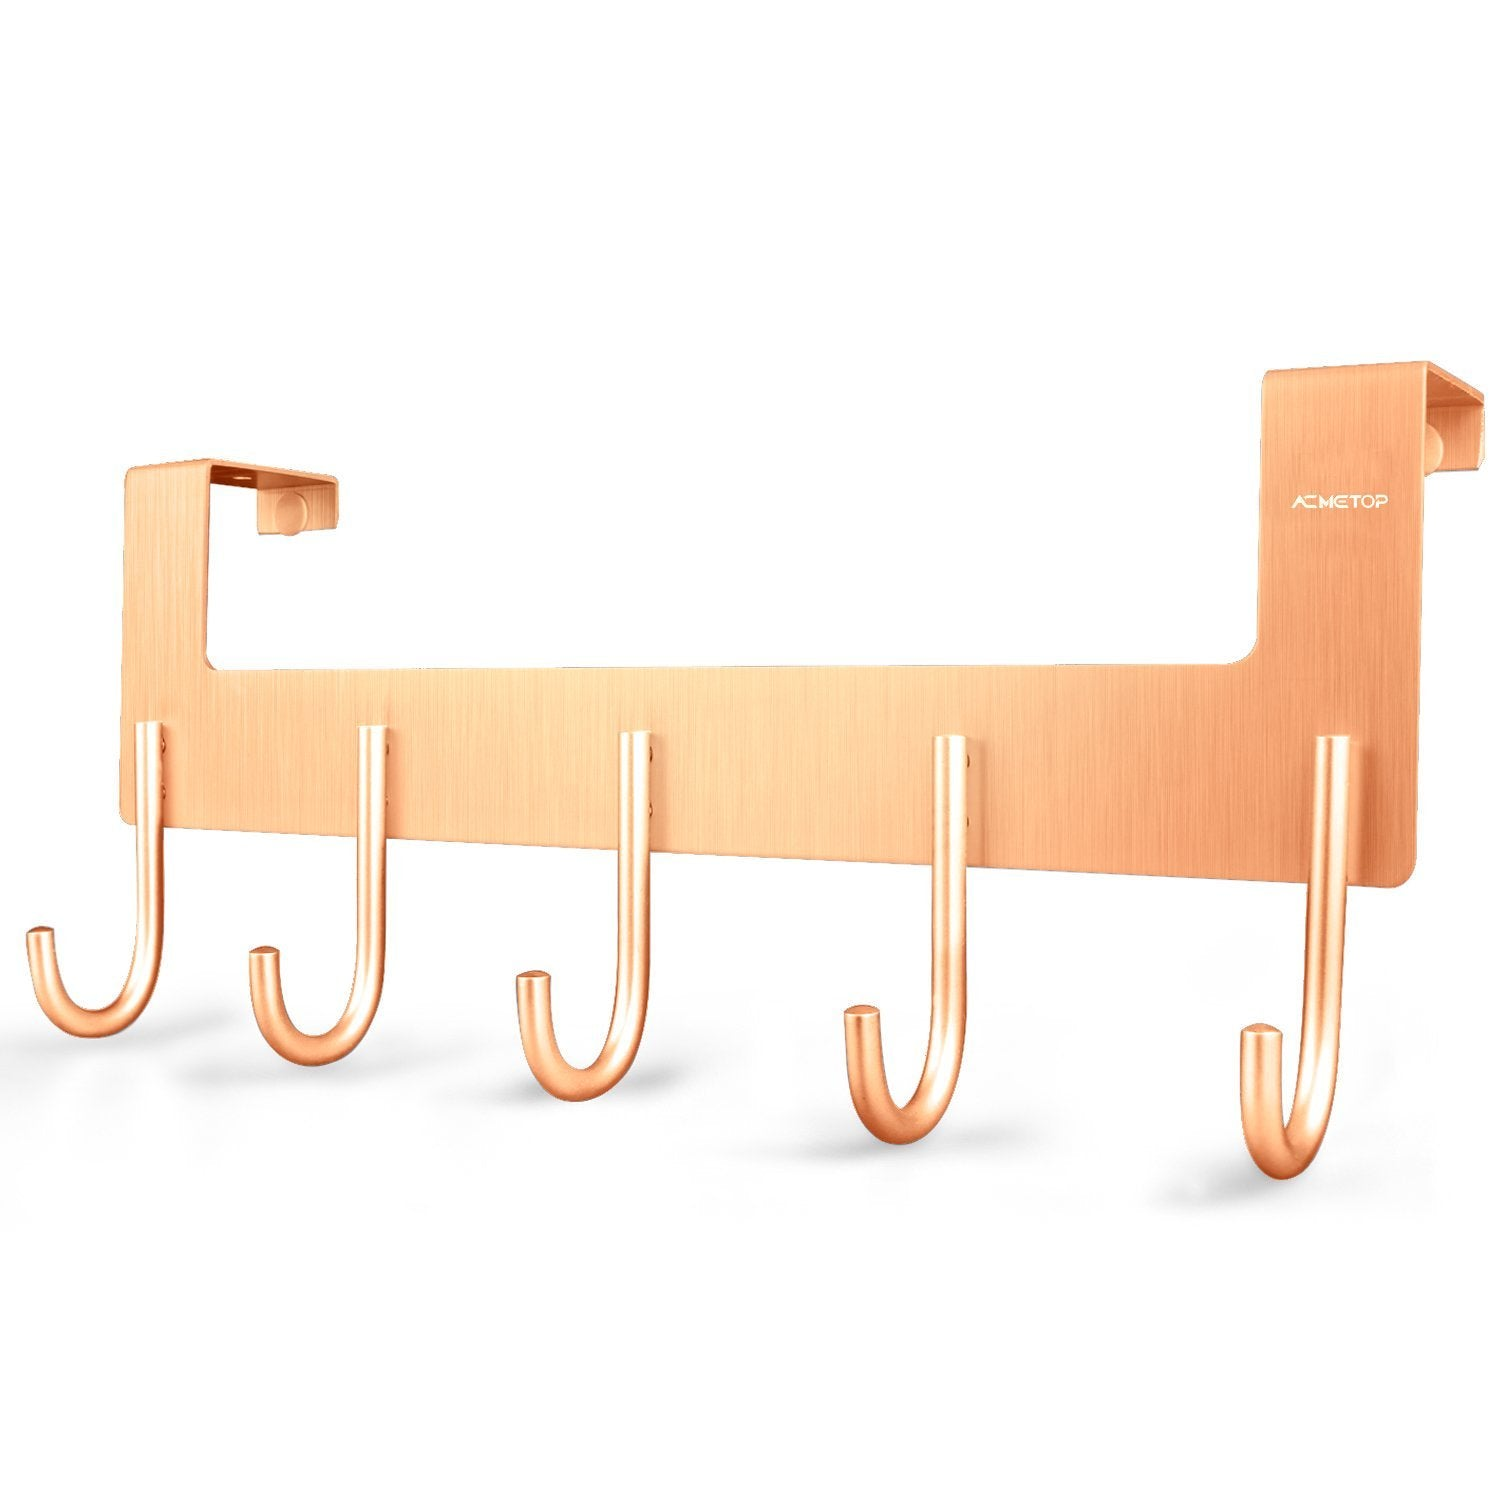 ACMETOP Over The Door Hook Hanger, Heavy-Duty Organizer for Coat, Towel, Bag, Robe - 5 Hooks, Aluminum, Brush Finish (Rose Gold)